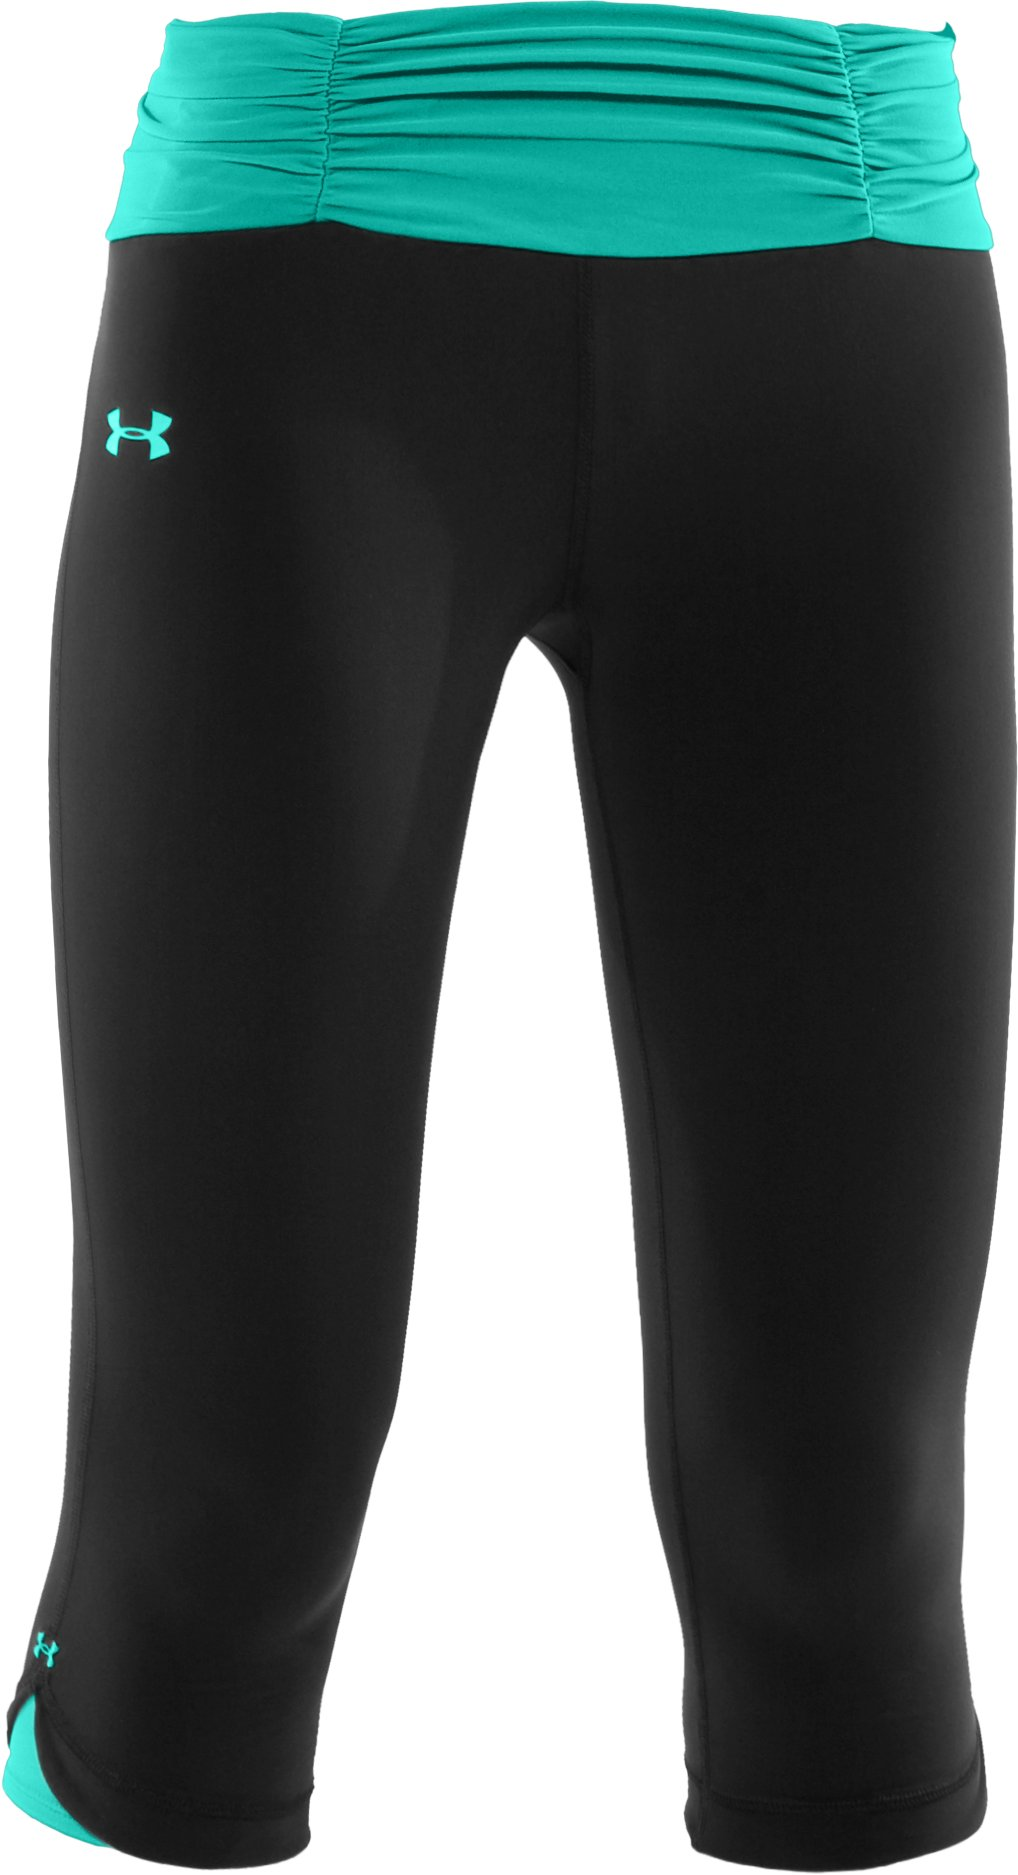 Women's Shatter II Capri Pants, Black